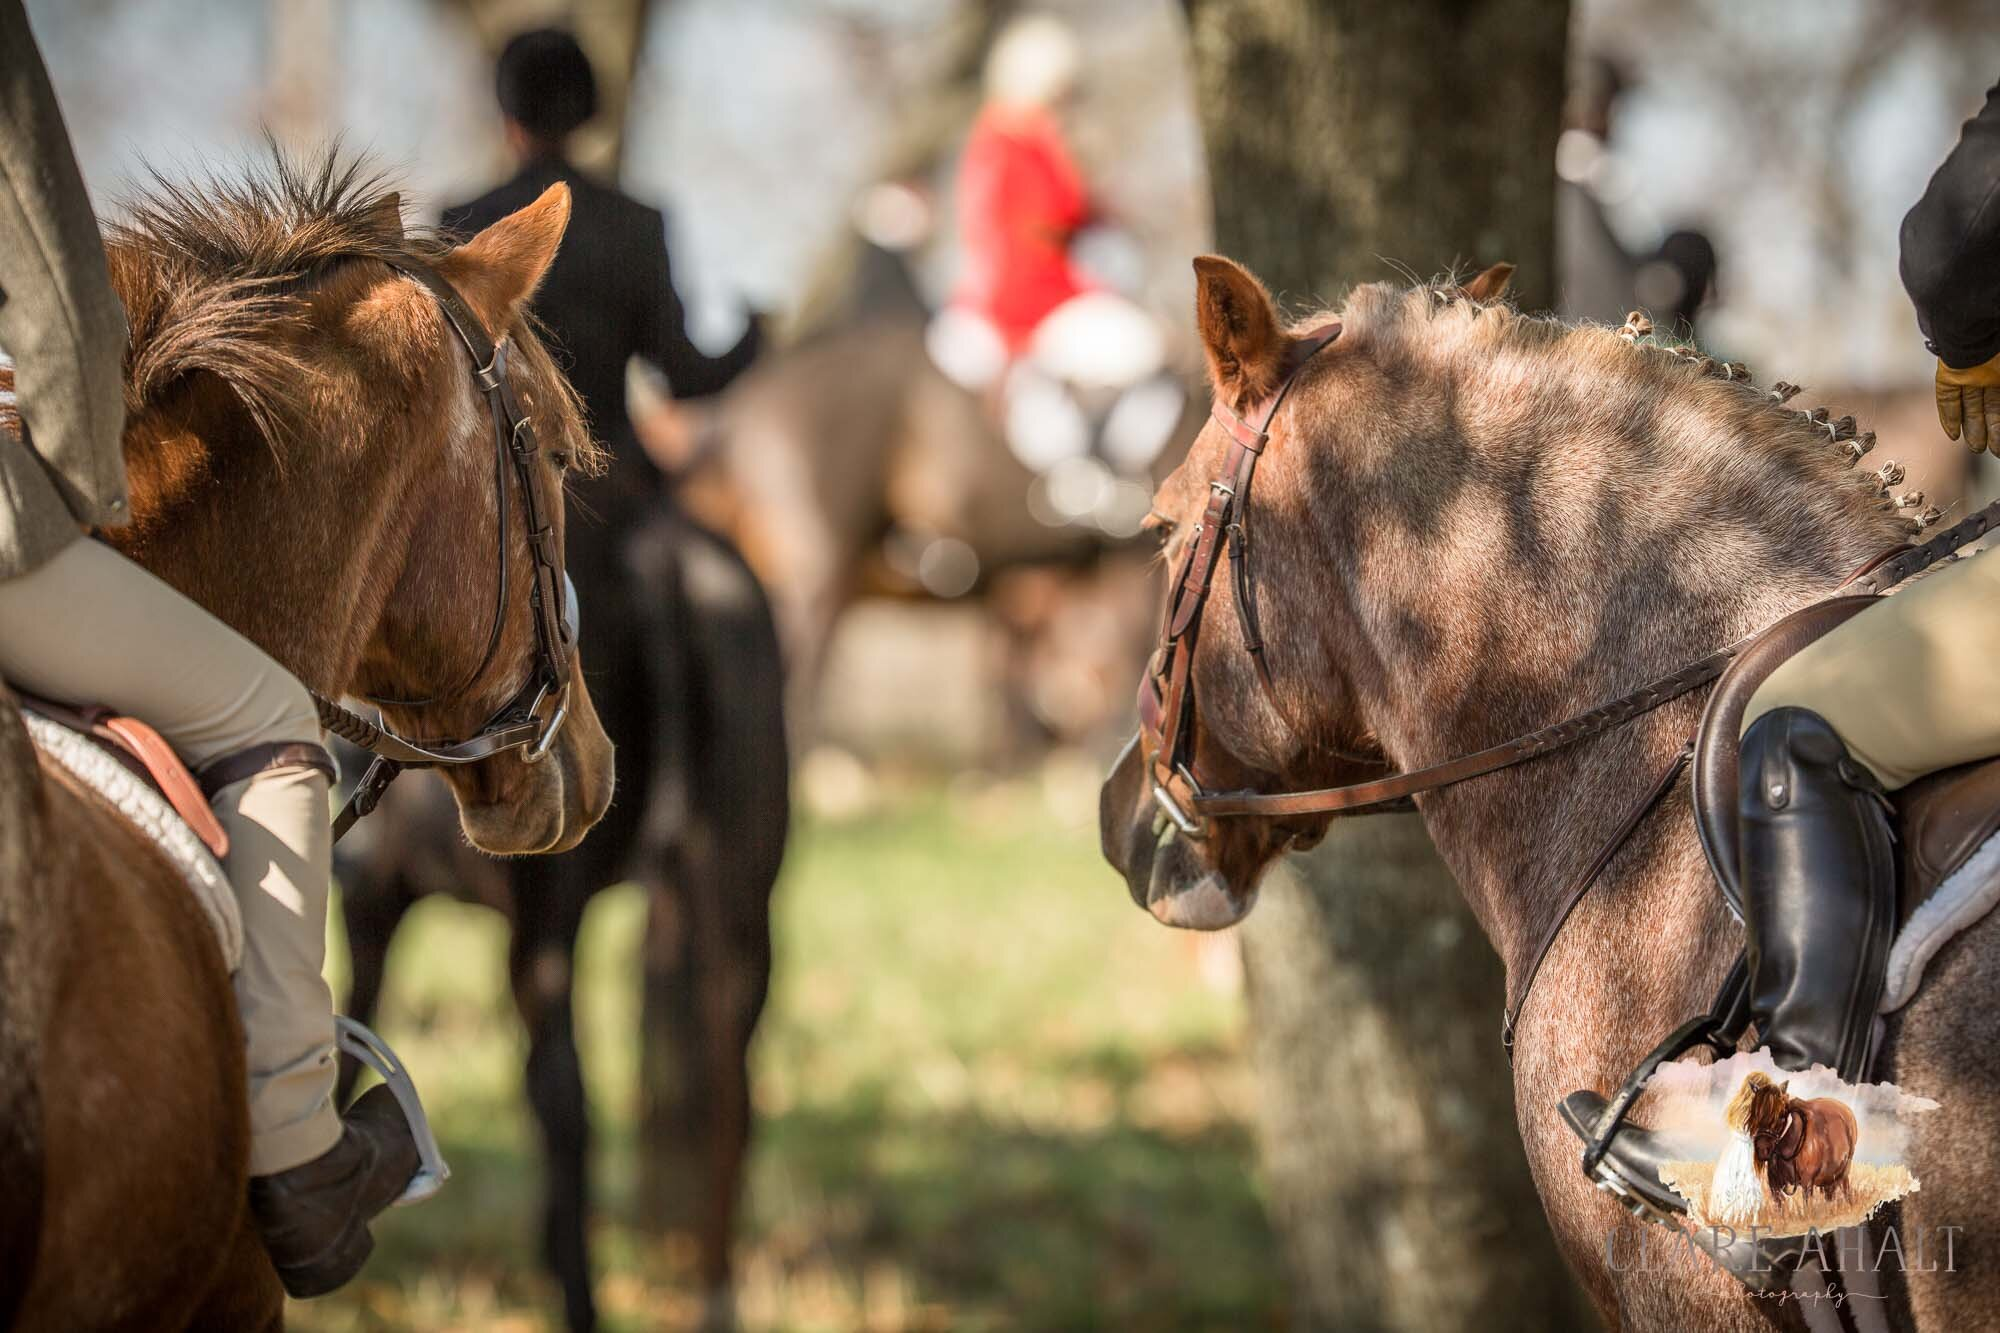 equine_photographer_potomac_md_equine_photographer_middleburg_VA_equine_portraiture_loudon_county_VA-2932.jpg